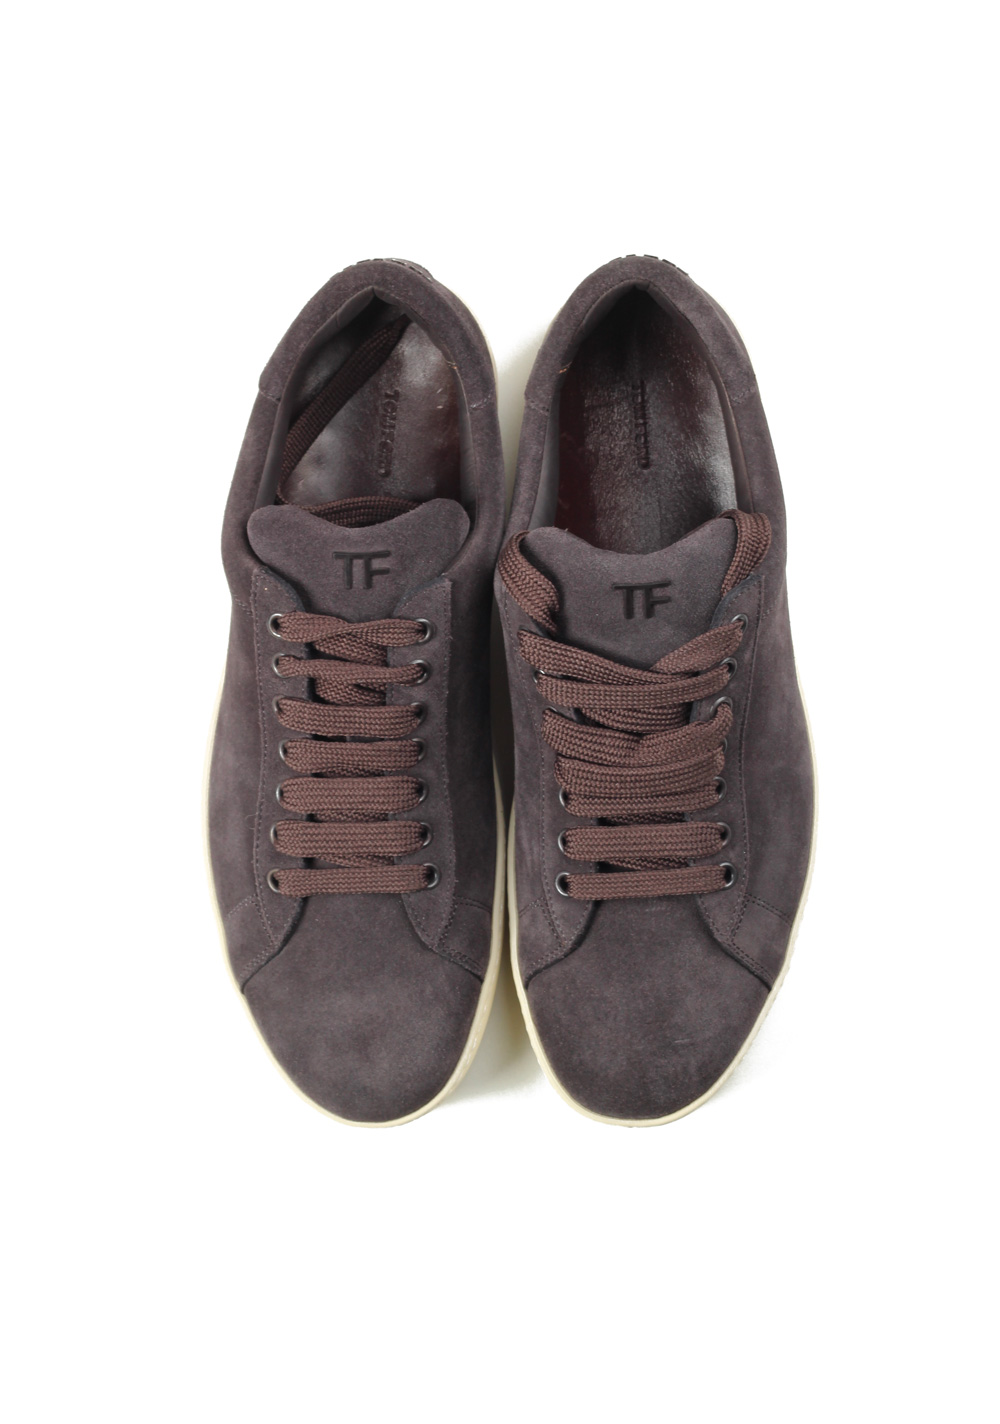 TOM FORD Russel low Top Sneaker Shoes Size 8 Uk / 9 U.S. | Costume Limité